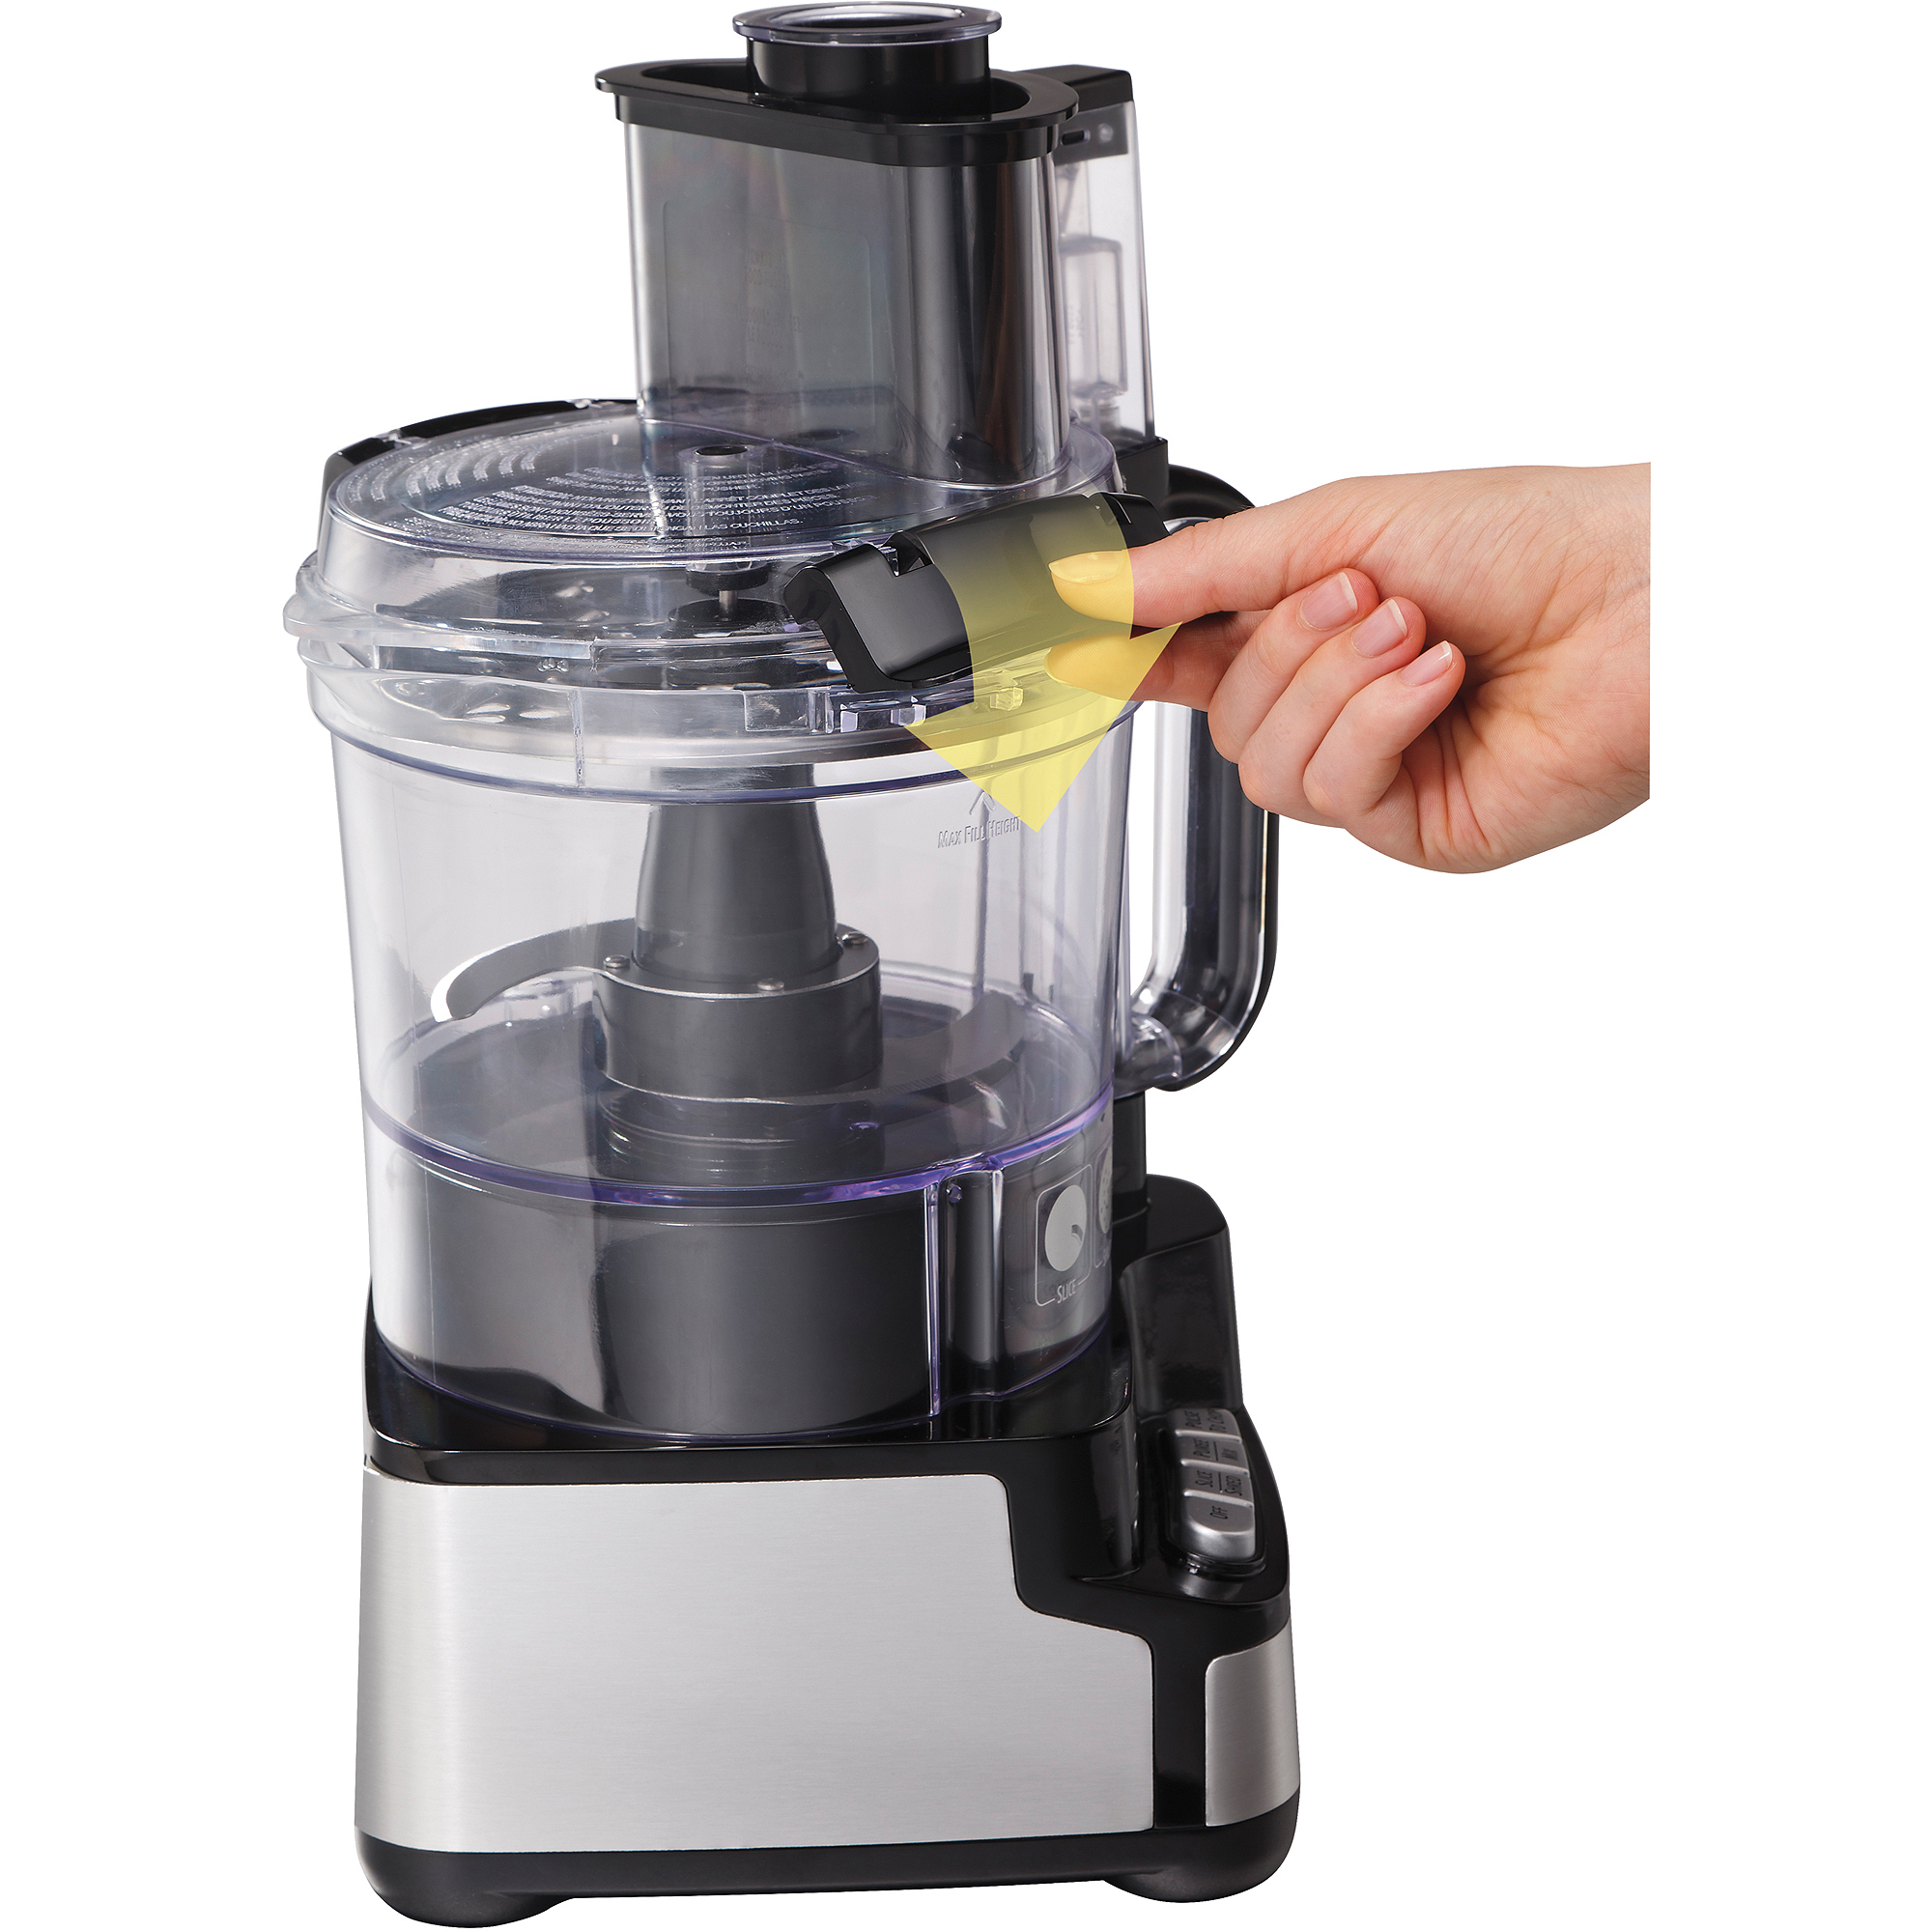 Hamilton Beach Stack & Snap 12-Cup Food Processor, Black